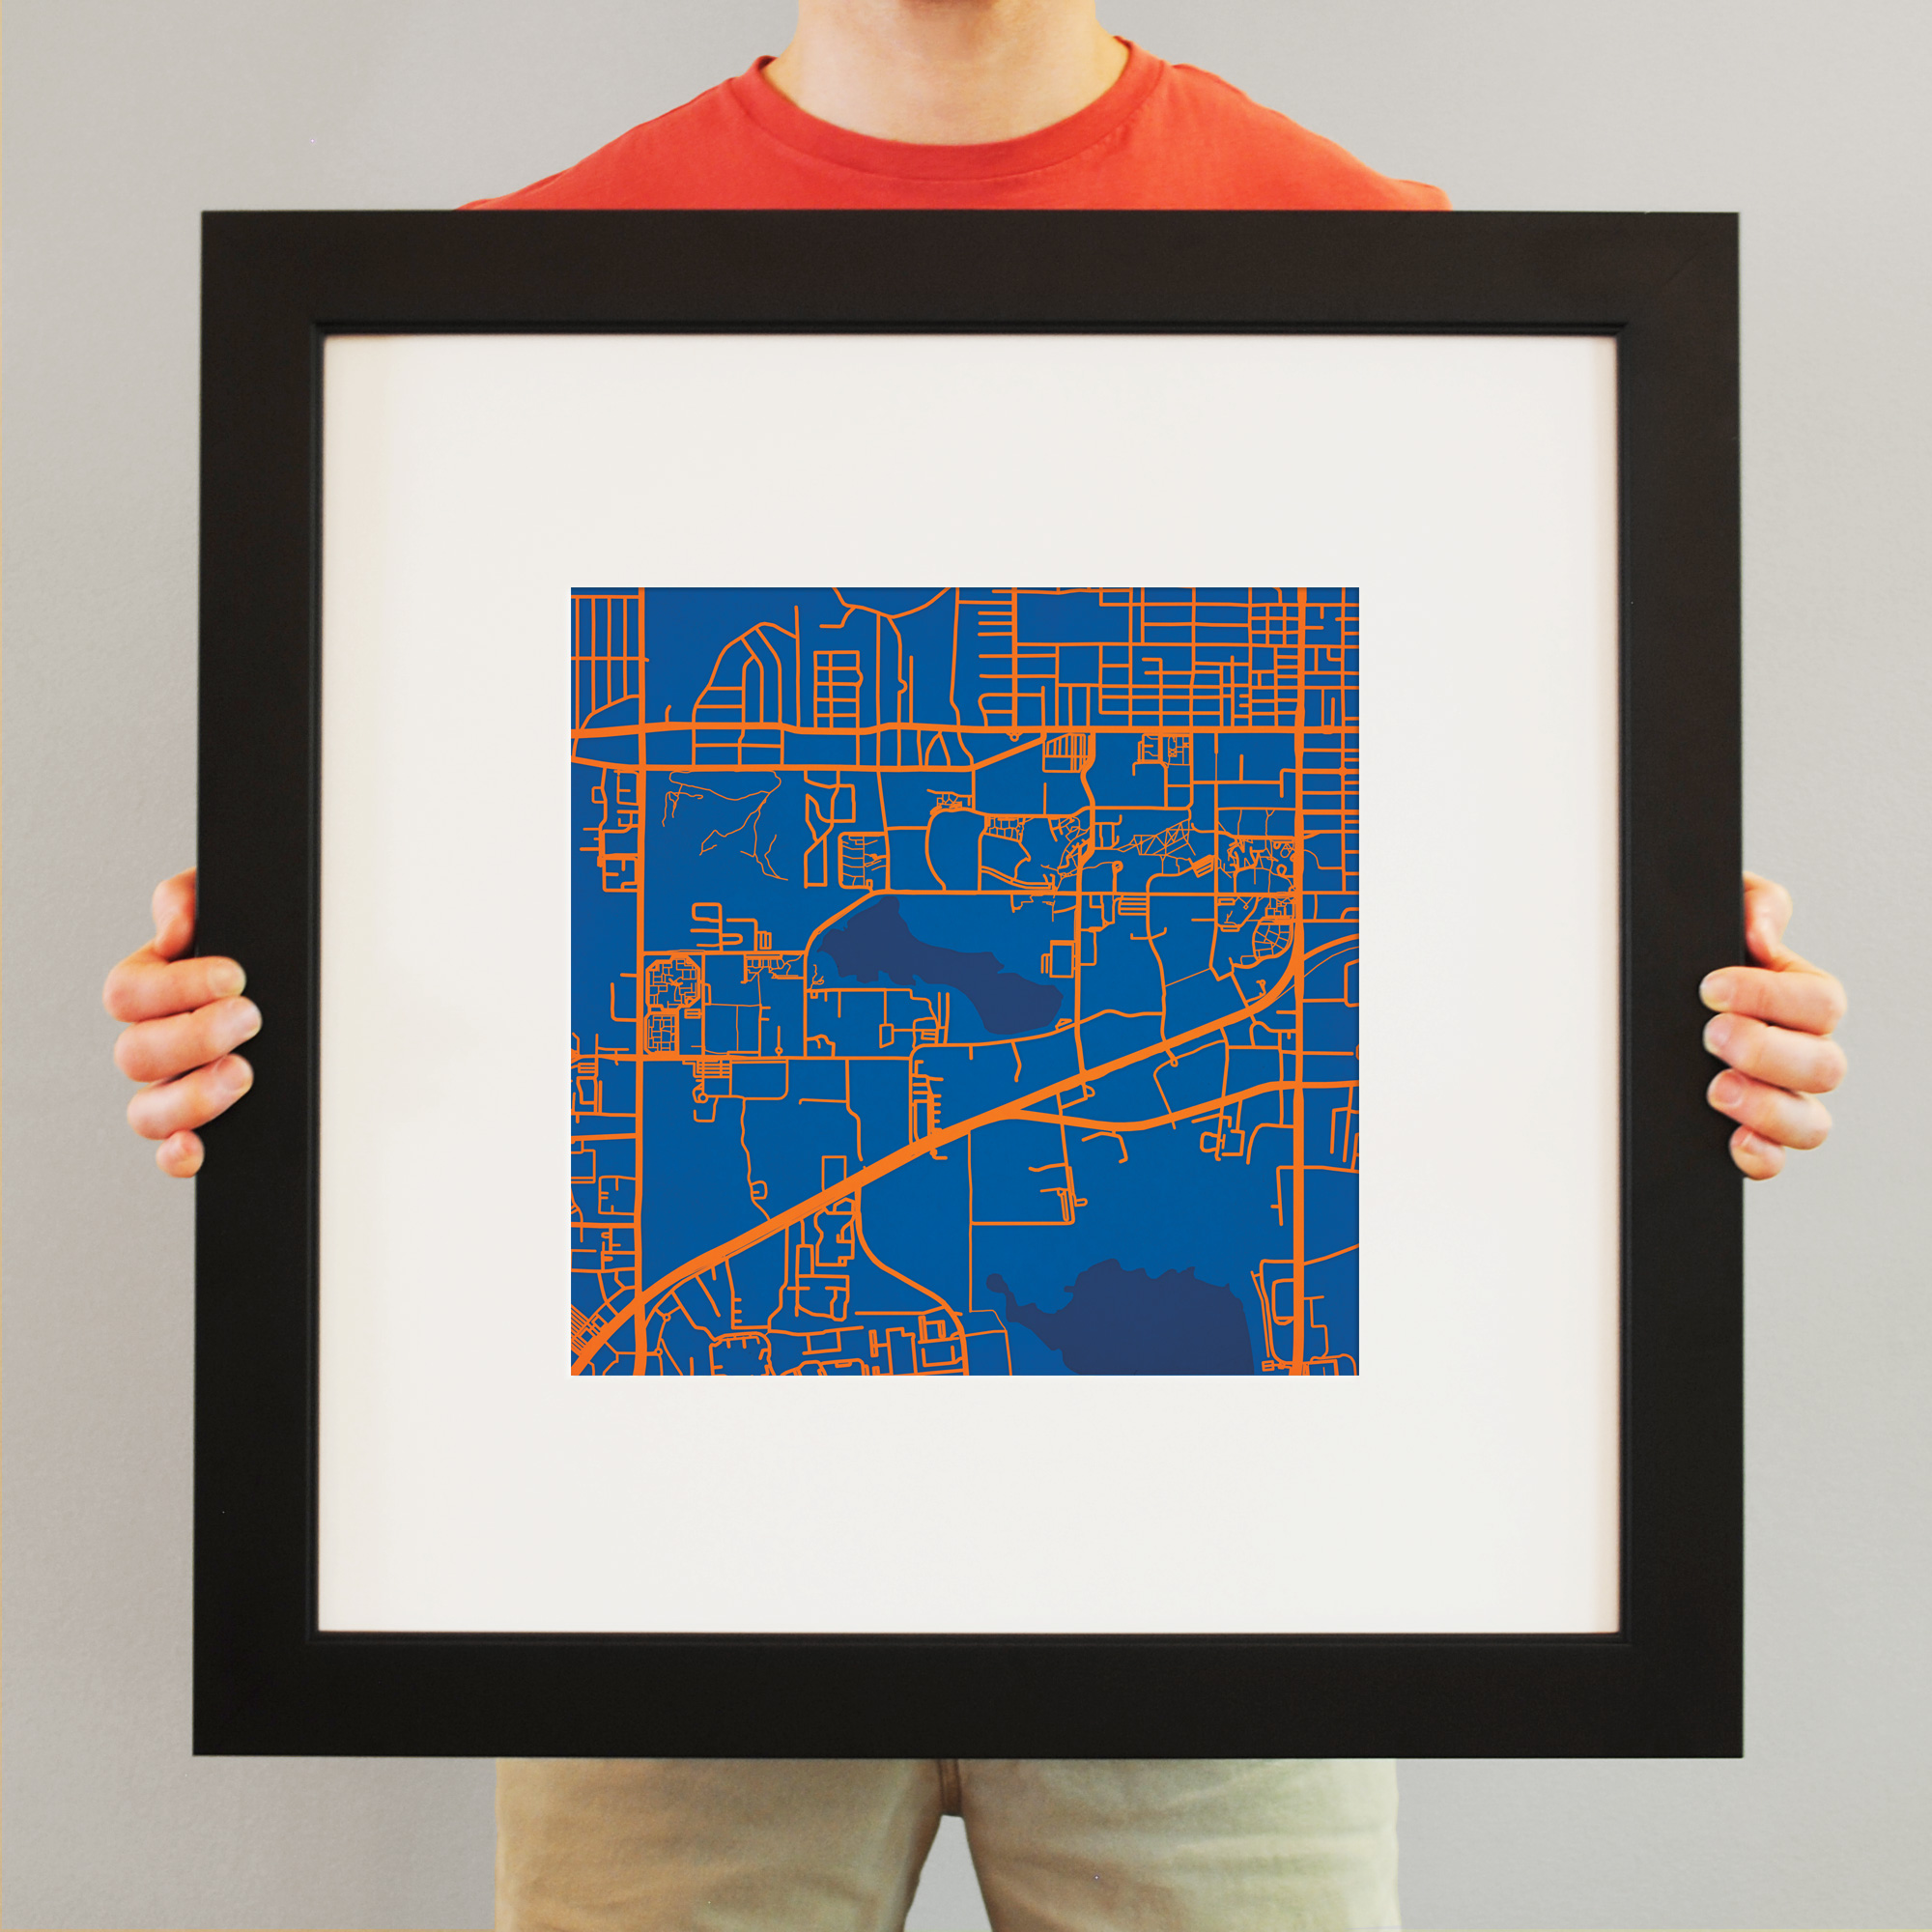 University of Florida Campus Map Art on